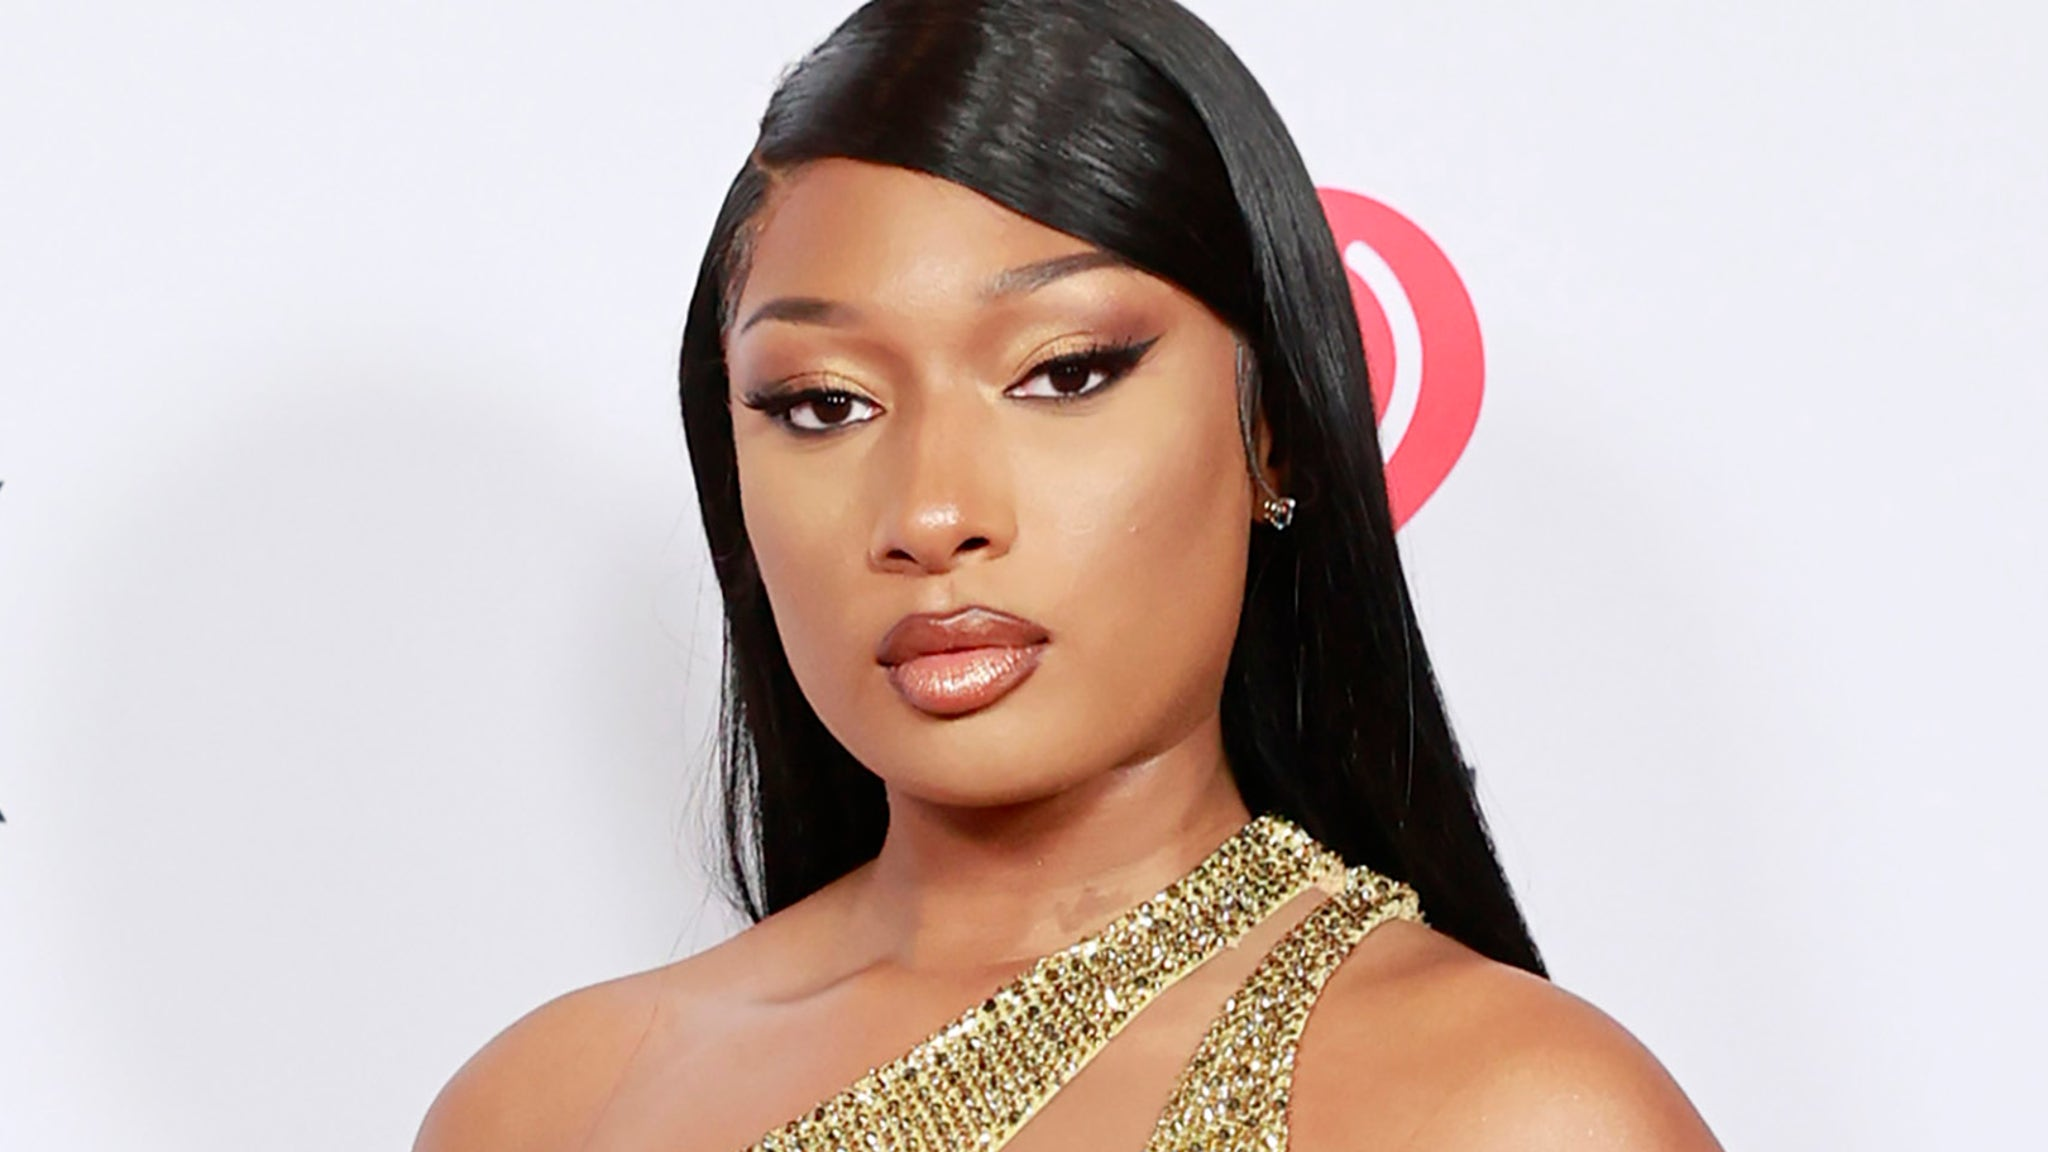 Megan Thee Stallion Helps Belated Fan's Family Cover Funeral Costs With Generous Donation